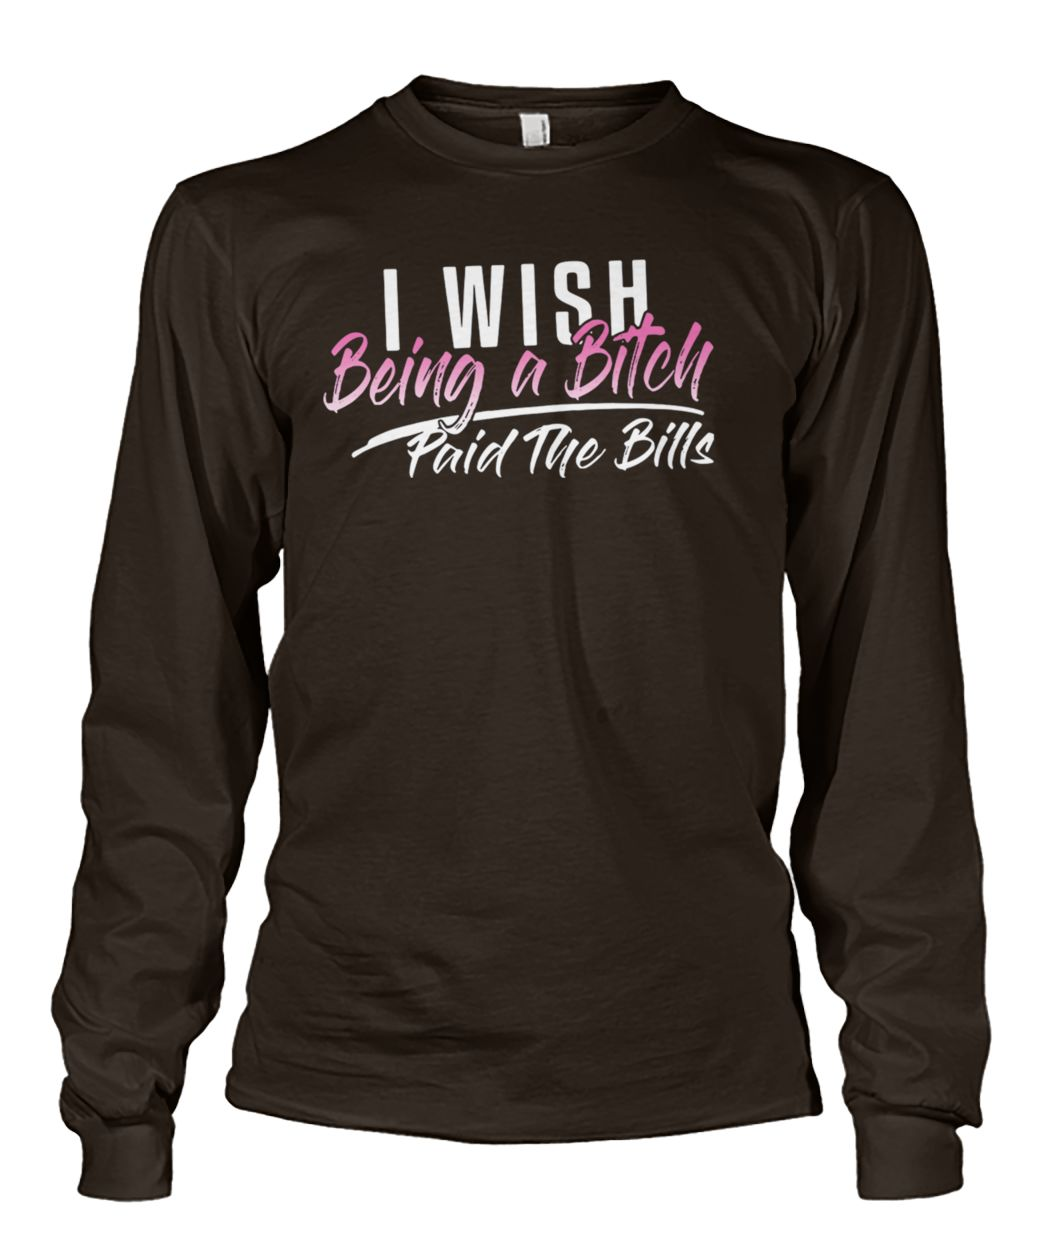 I wish being a bitch paid the bills unisex long sleeve